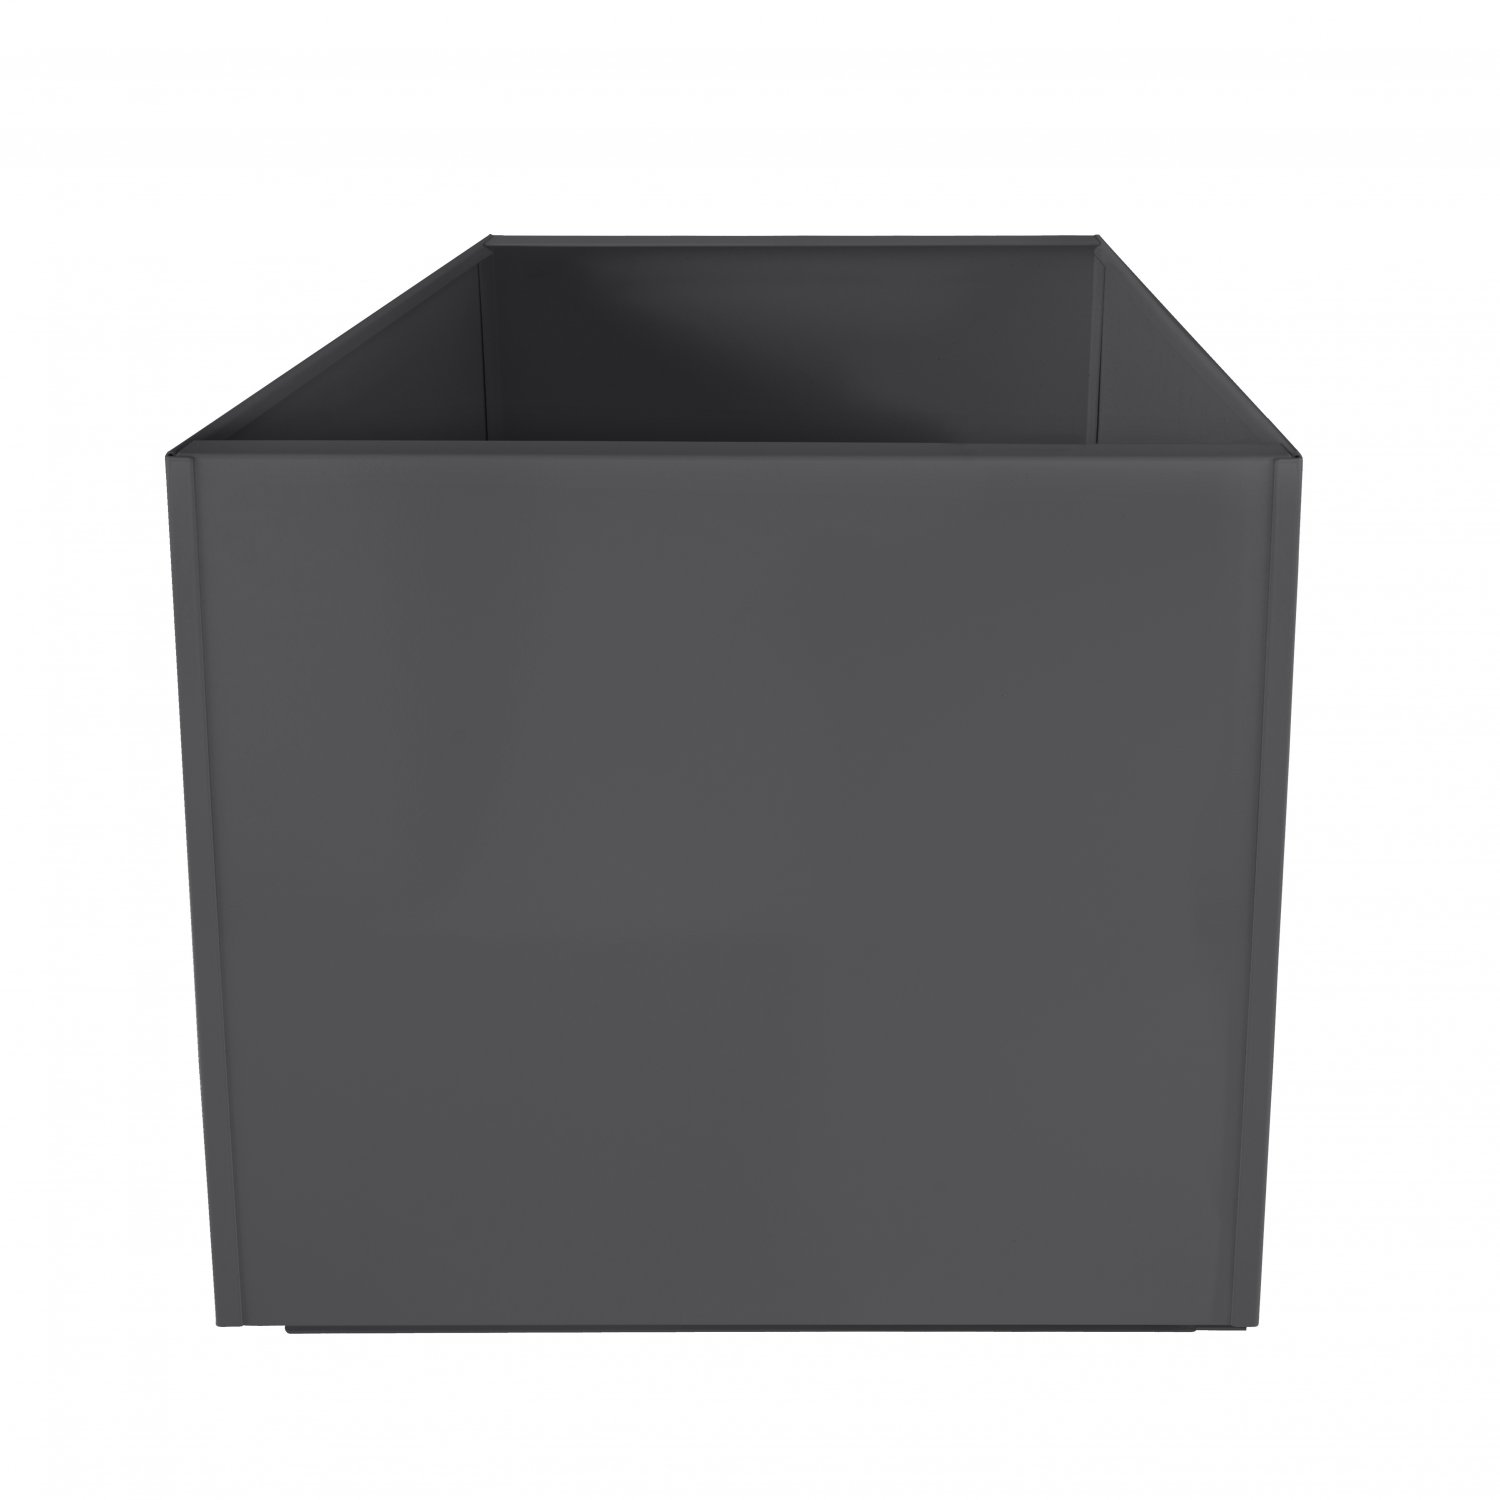 Charcoal Grey Square 16 Inch Metal Planter Box Extra Large Aluminum